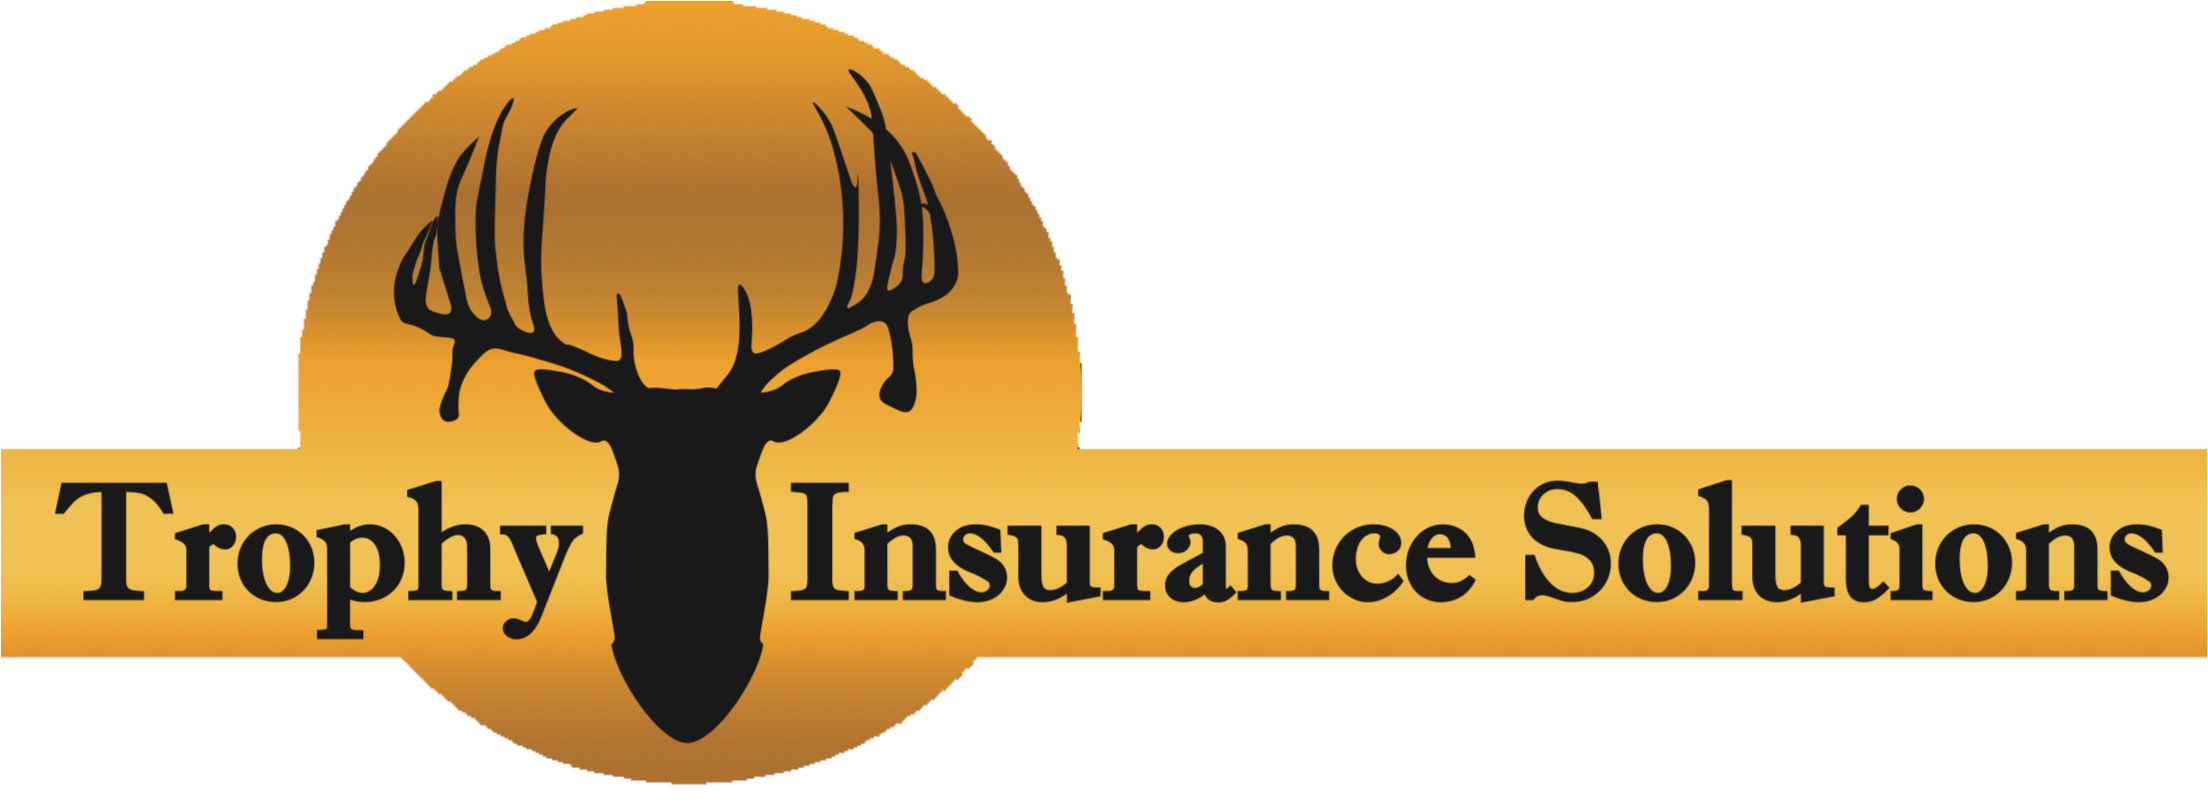 Trophy Insurance Solutions